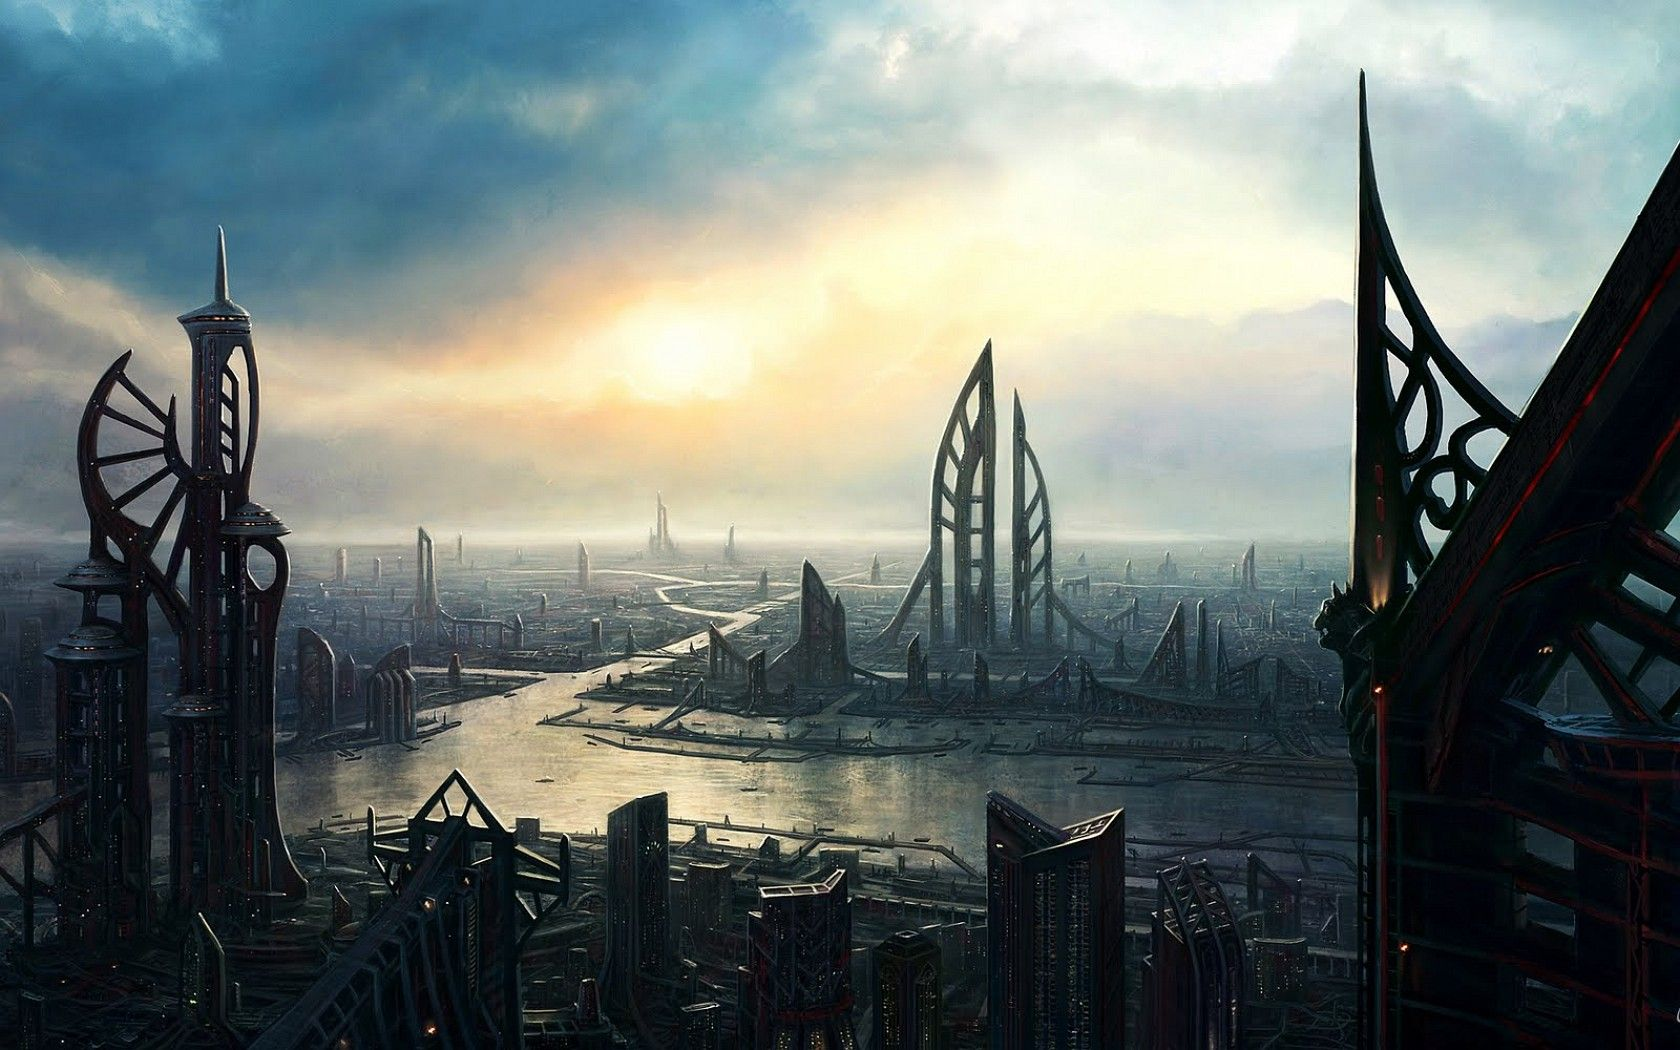 Great Wallpaper High Resolution Sci Fi - sci-fi-wallpaper-9352-9698-hd-wallpapers  Perfect Image Reference_319877.jpg